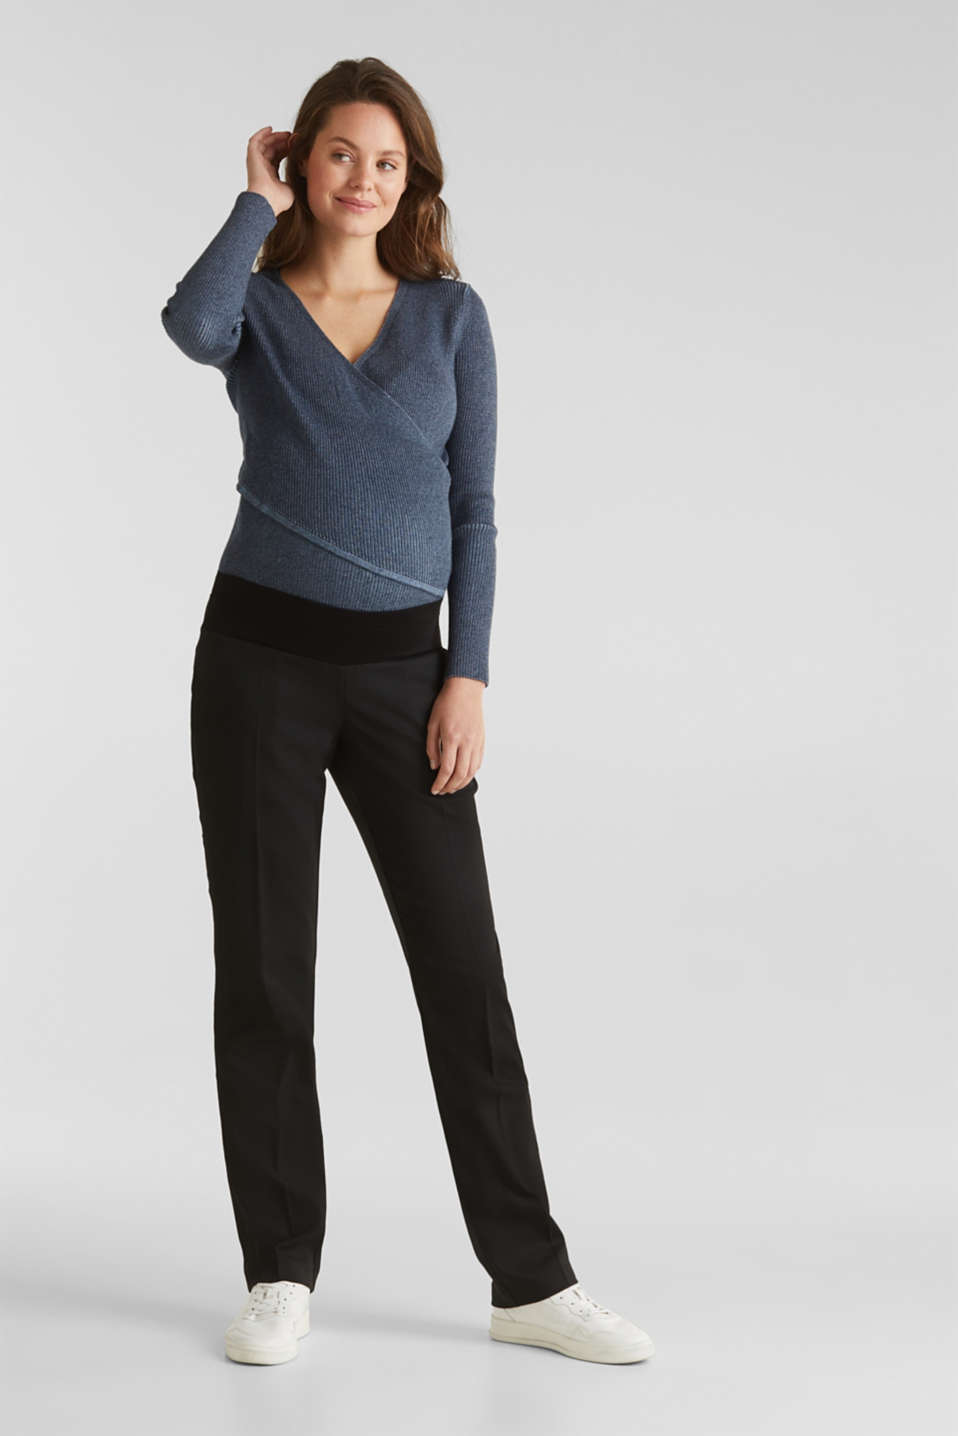 Esprit - Business pantalon met onder de buik vallende band